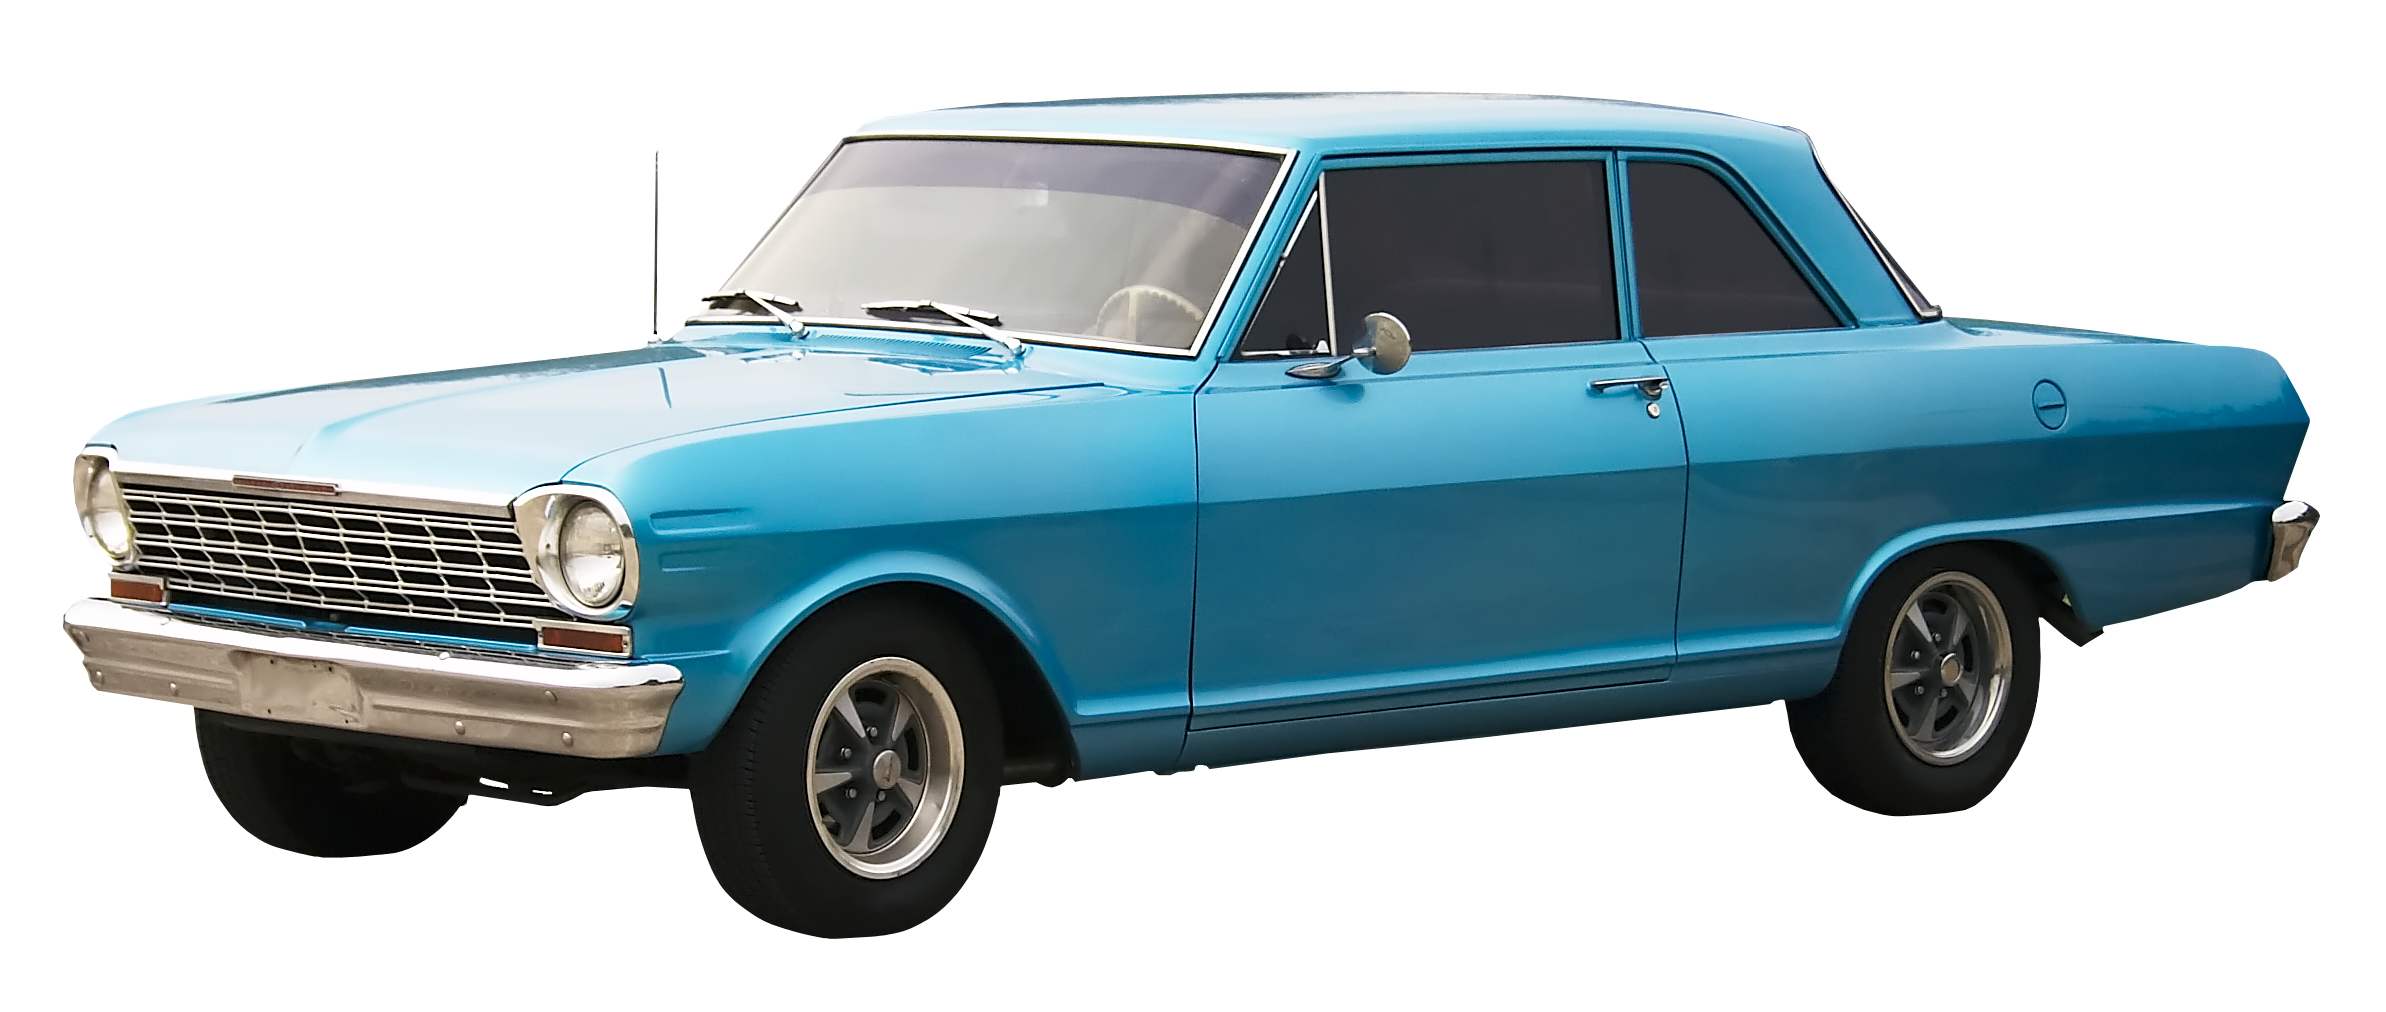 File:Vintage blue car.png - Wikimedia Commons